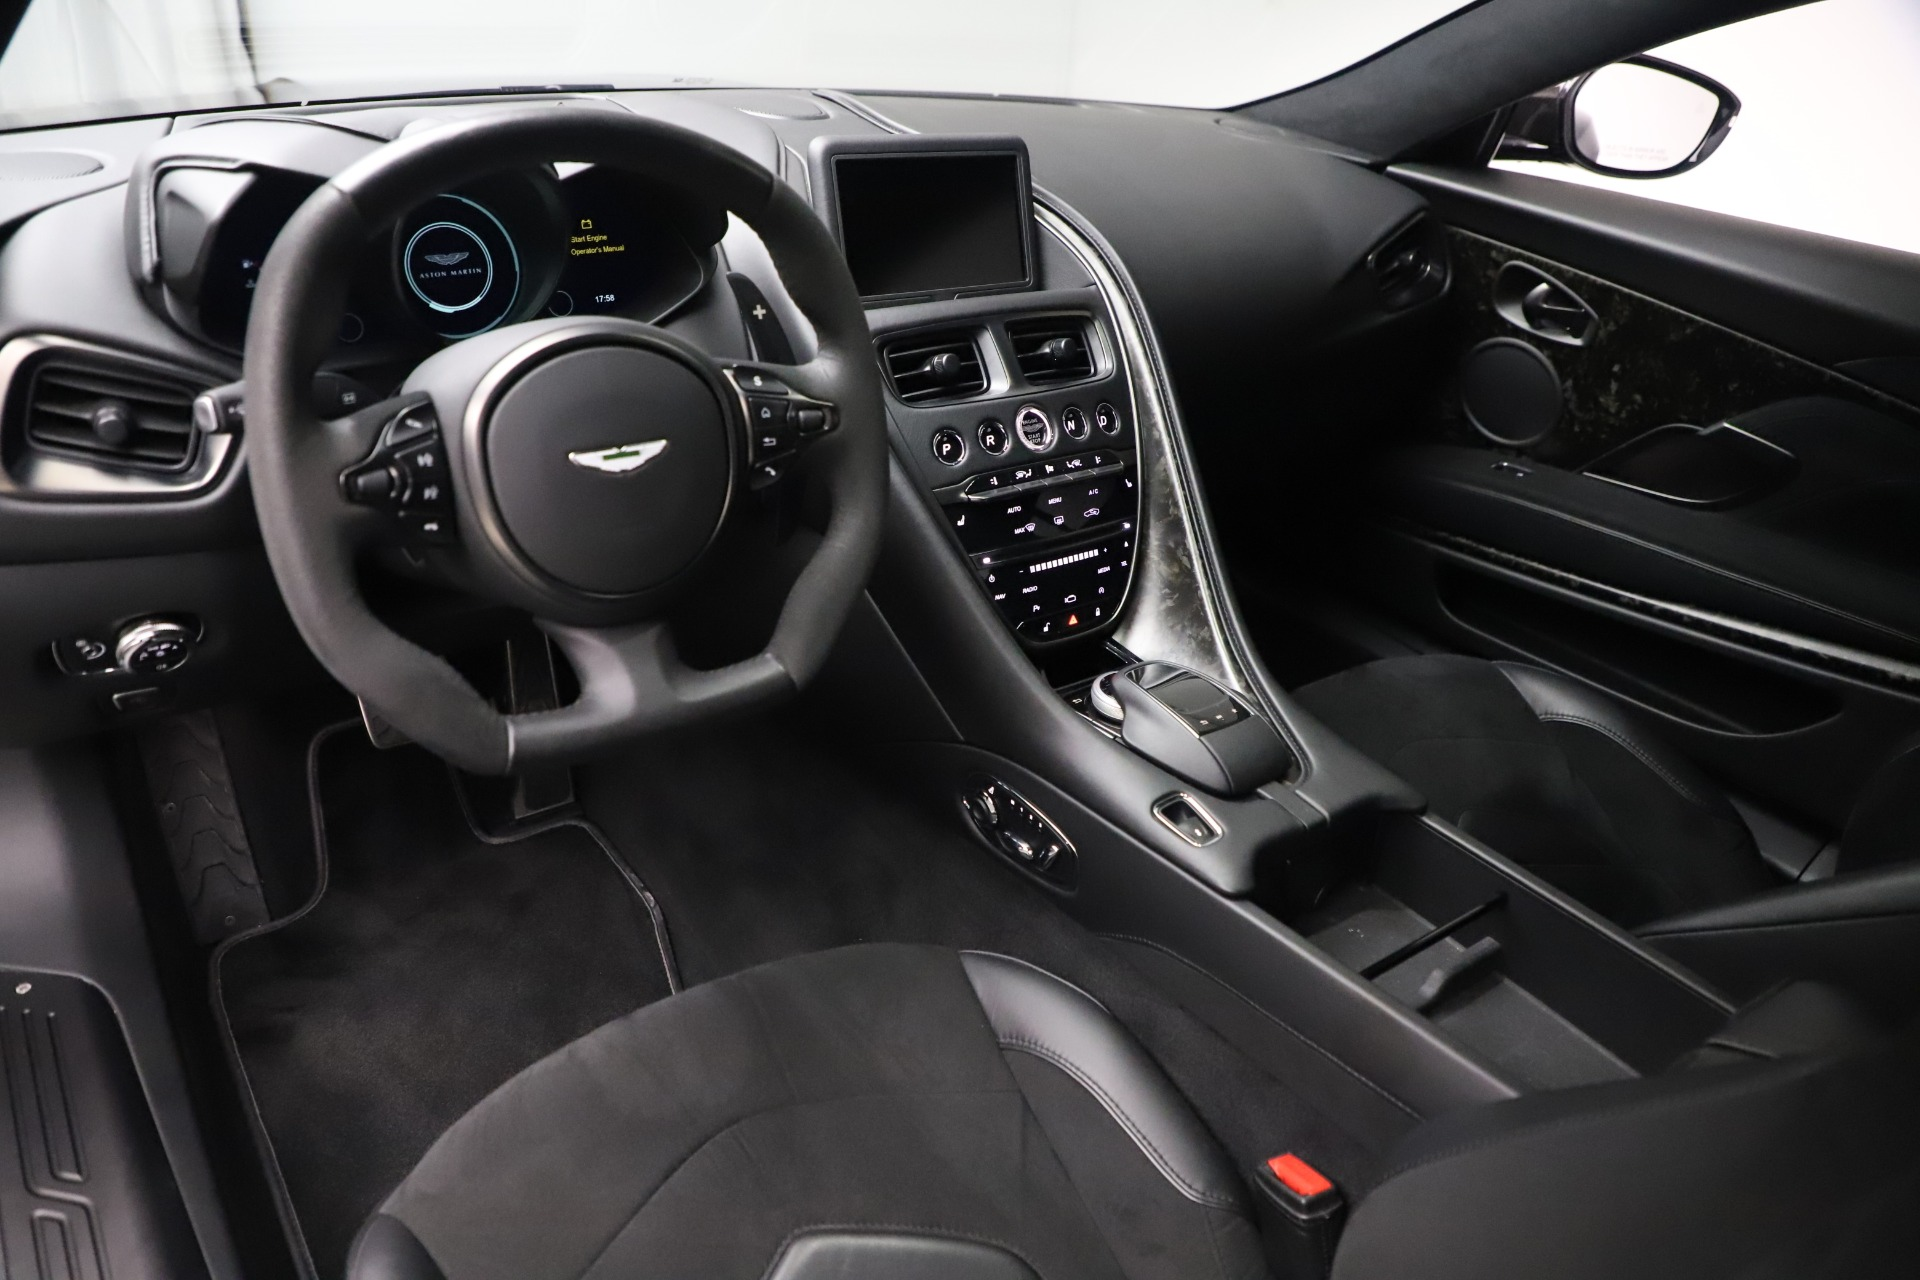 Used 2019 Aston Martin DBS Superleggera For Sale In Greenwich, CT 3570_p13